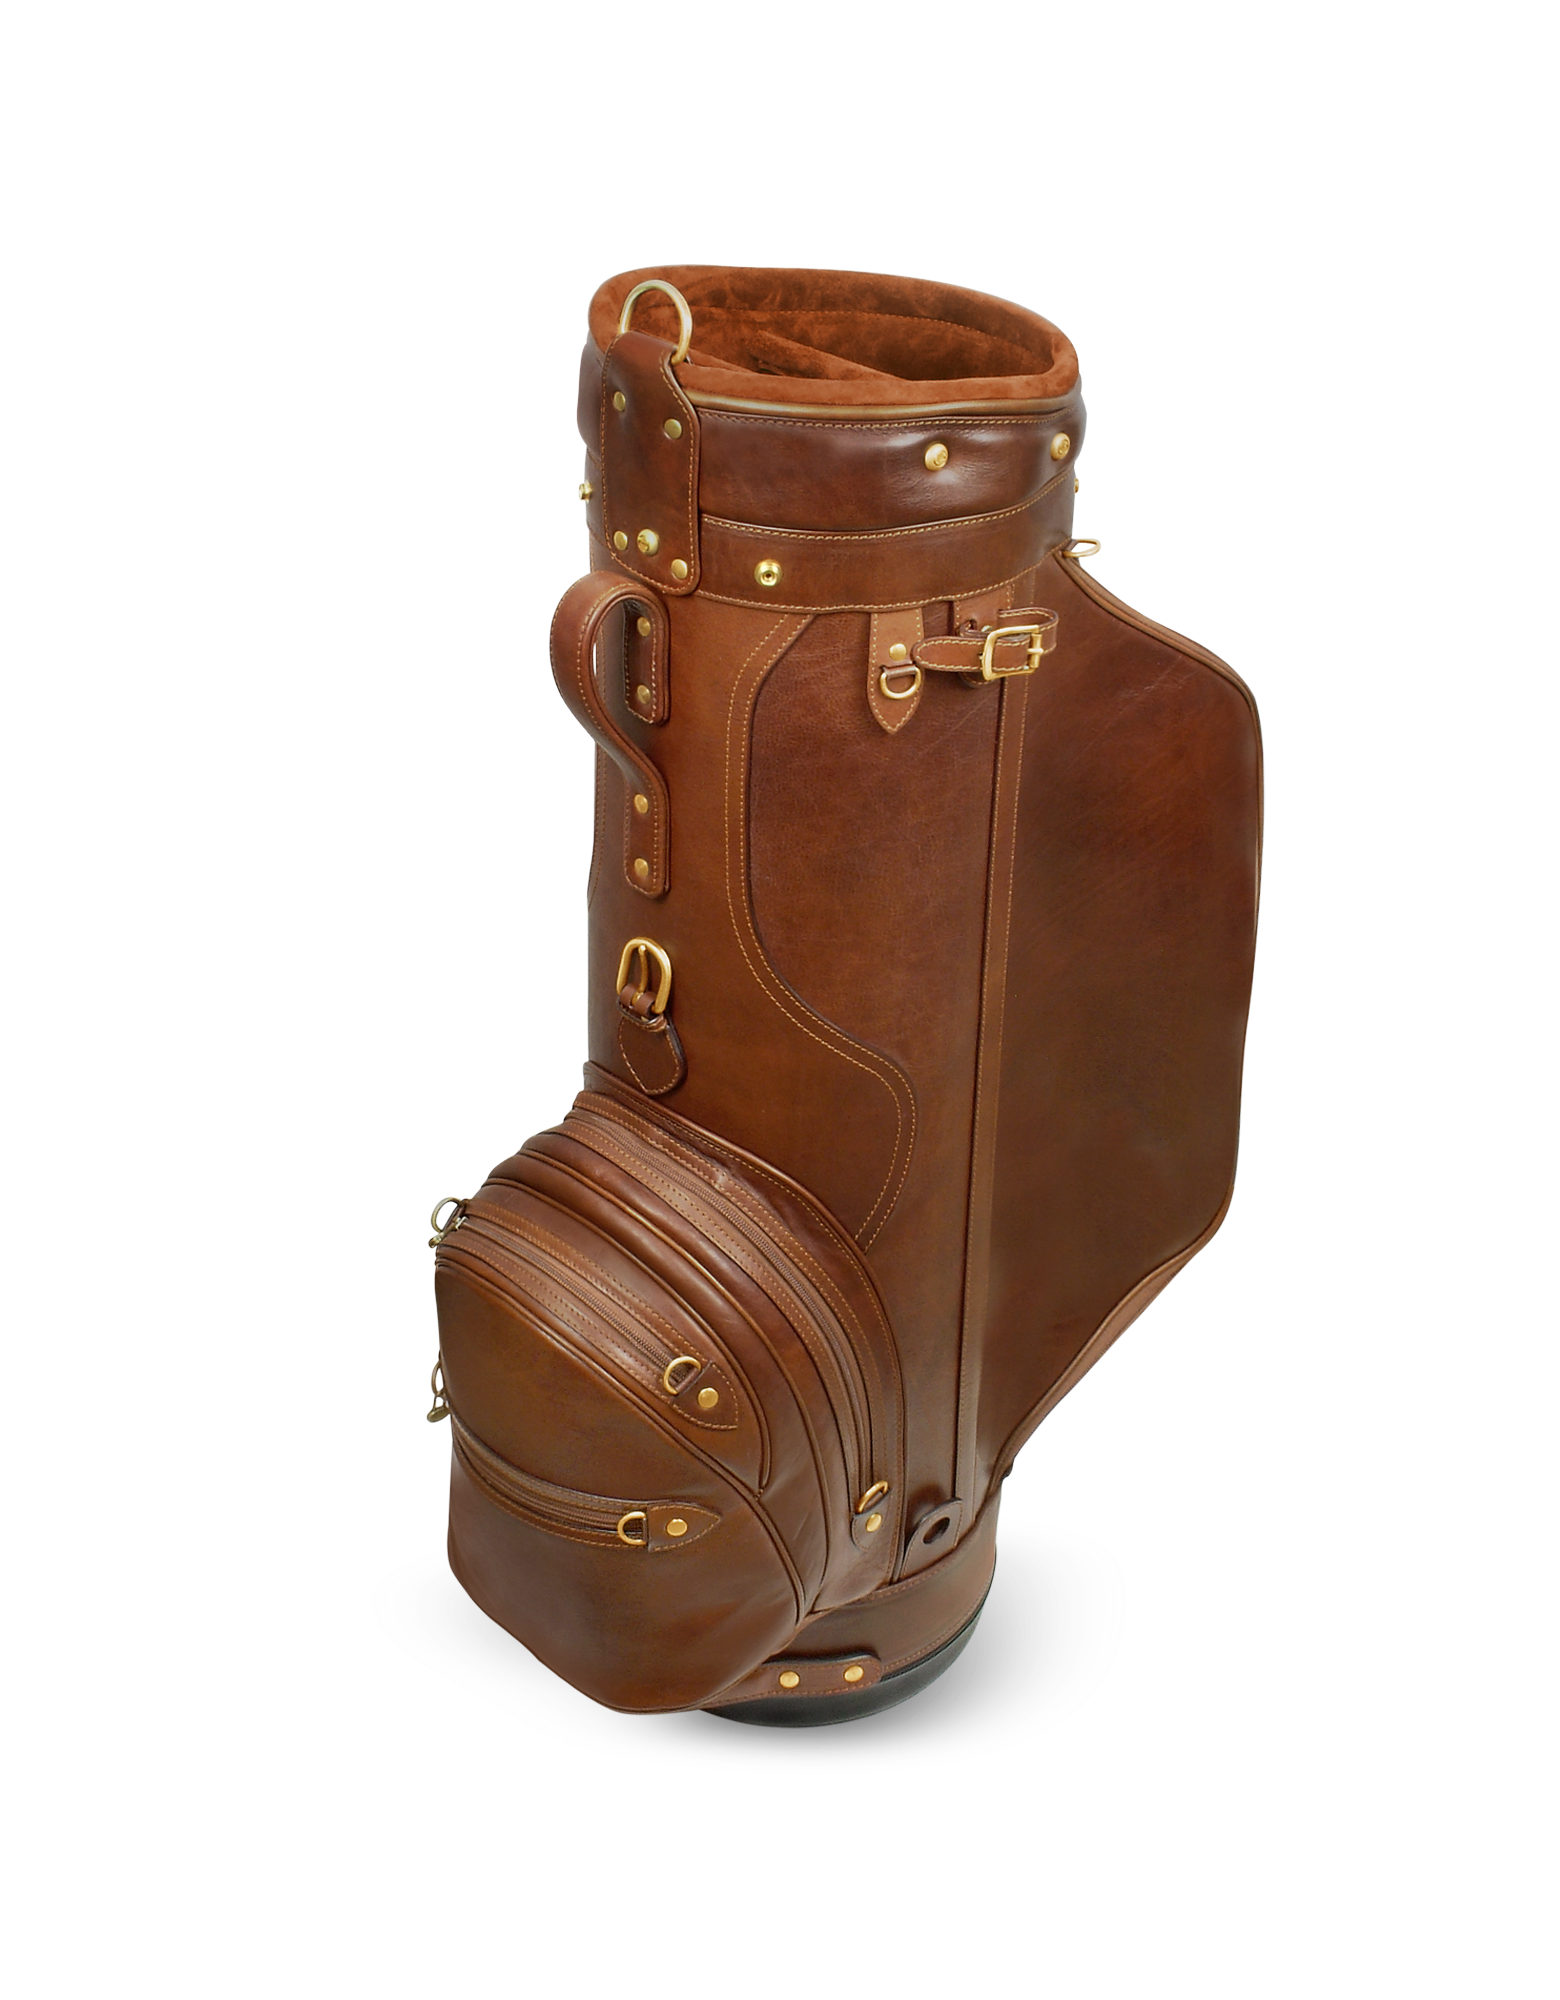 Image of Pro Staff 9.5 Genuine Italian Leather Golf Bag